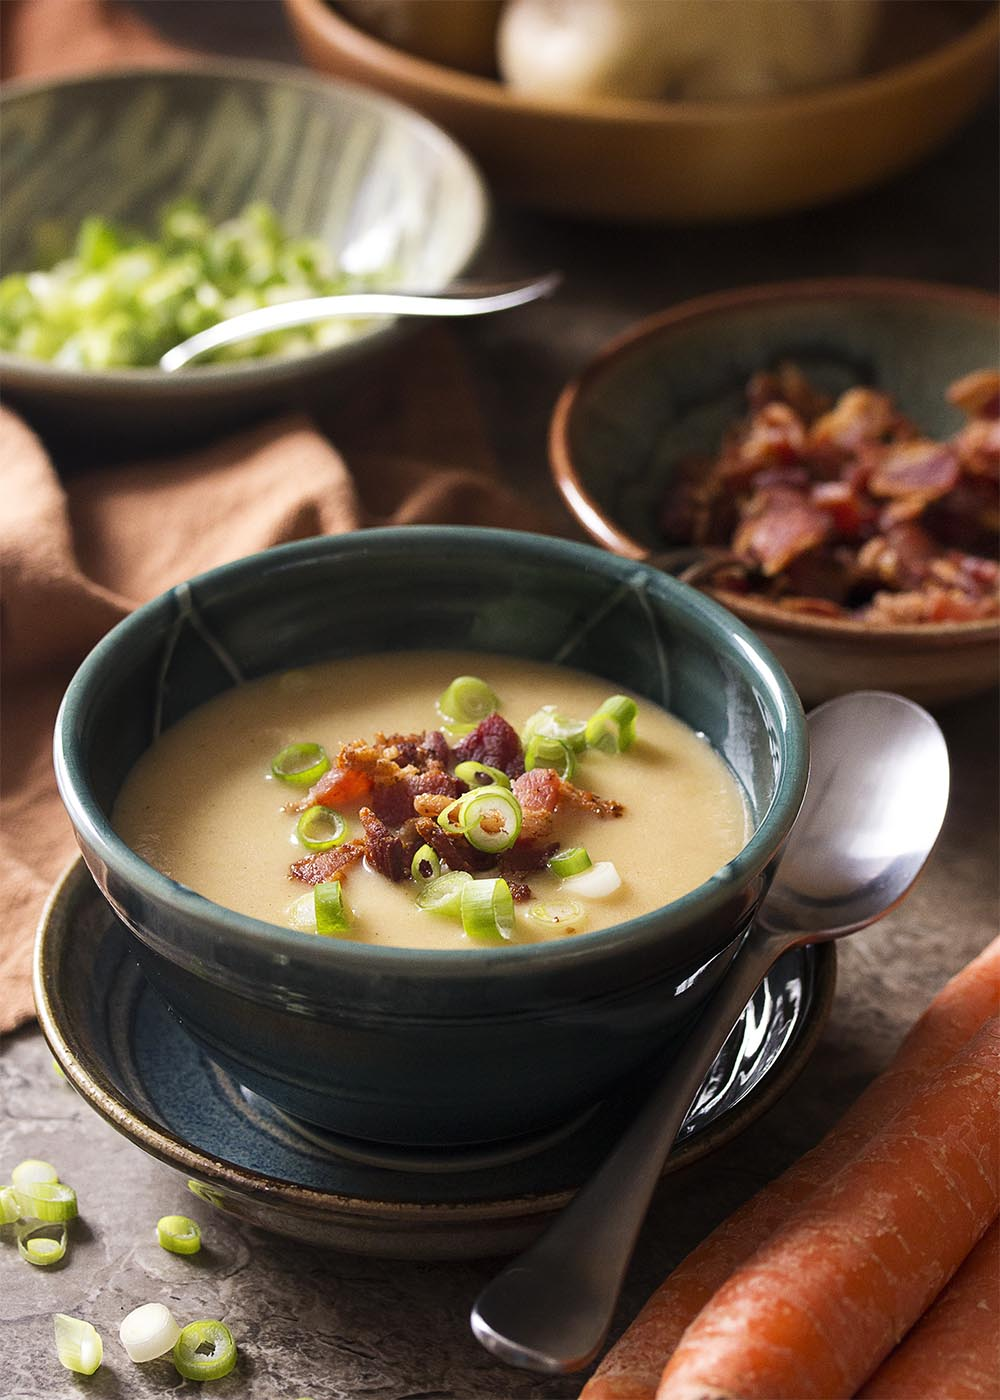 A green bowl of smooth potato carrot soup topped with crispy bacon and sliced scallions.